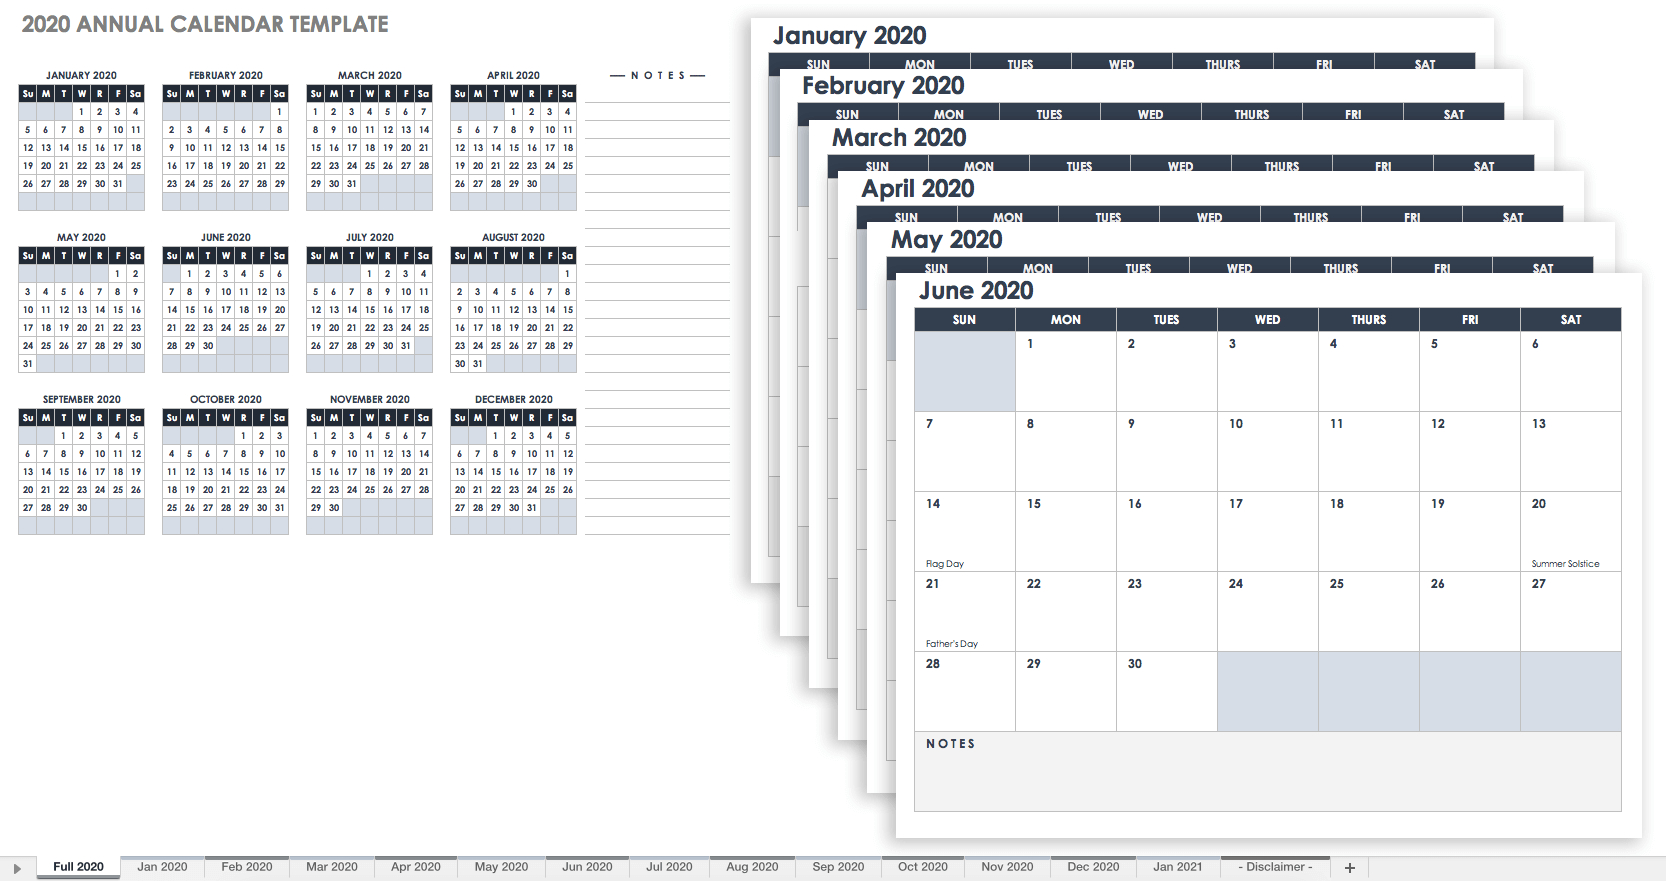 Free Blank Calendar Templates - Smartsheet with regard to Large Printable Blank Calendar Pages